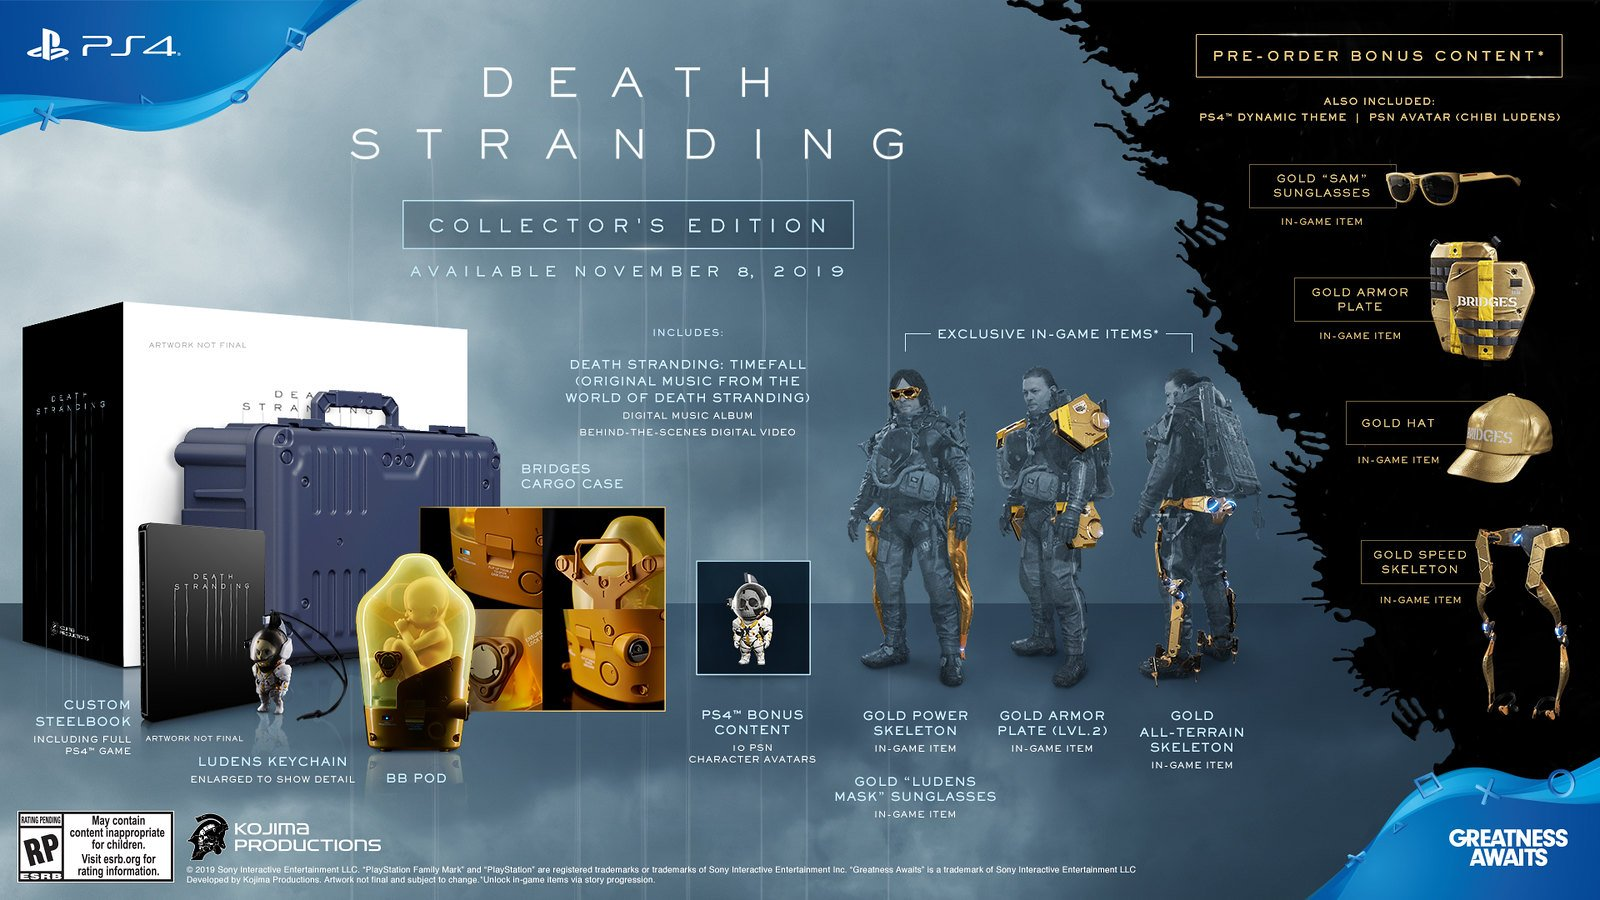 Death Stranding Collector's Edition diffferences preorder bonuses